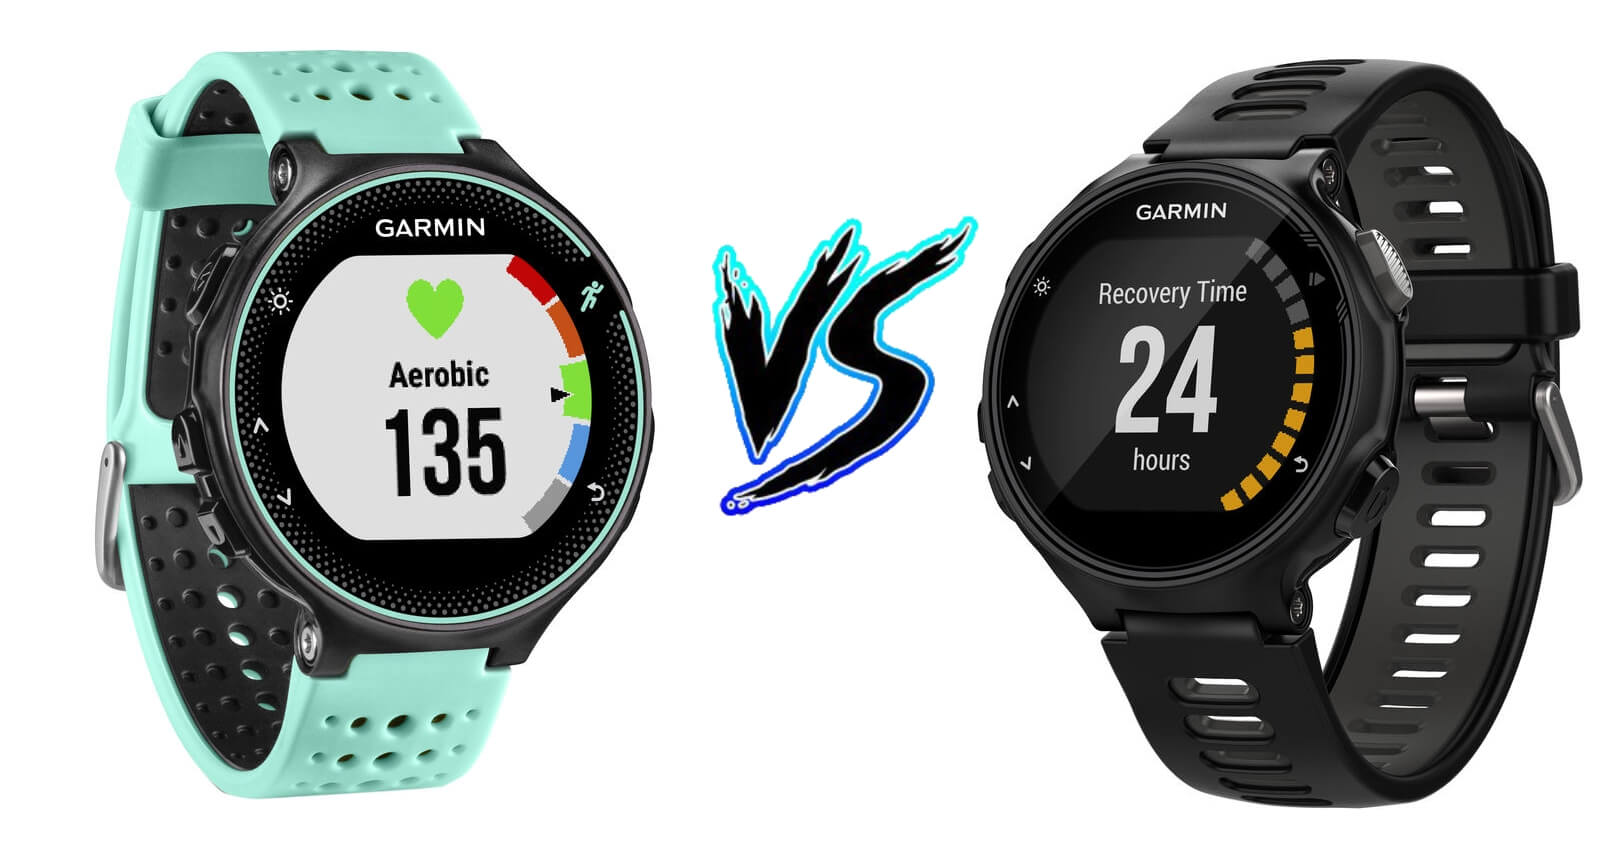 Garmin Forerunner 235 Vs Garmin Forerunner 735xt Which Is Best For